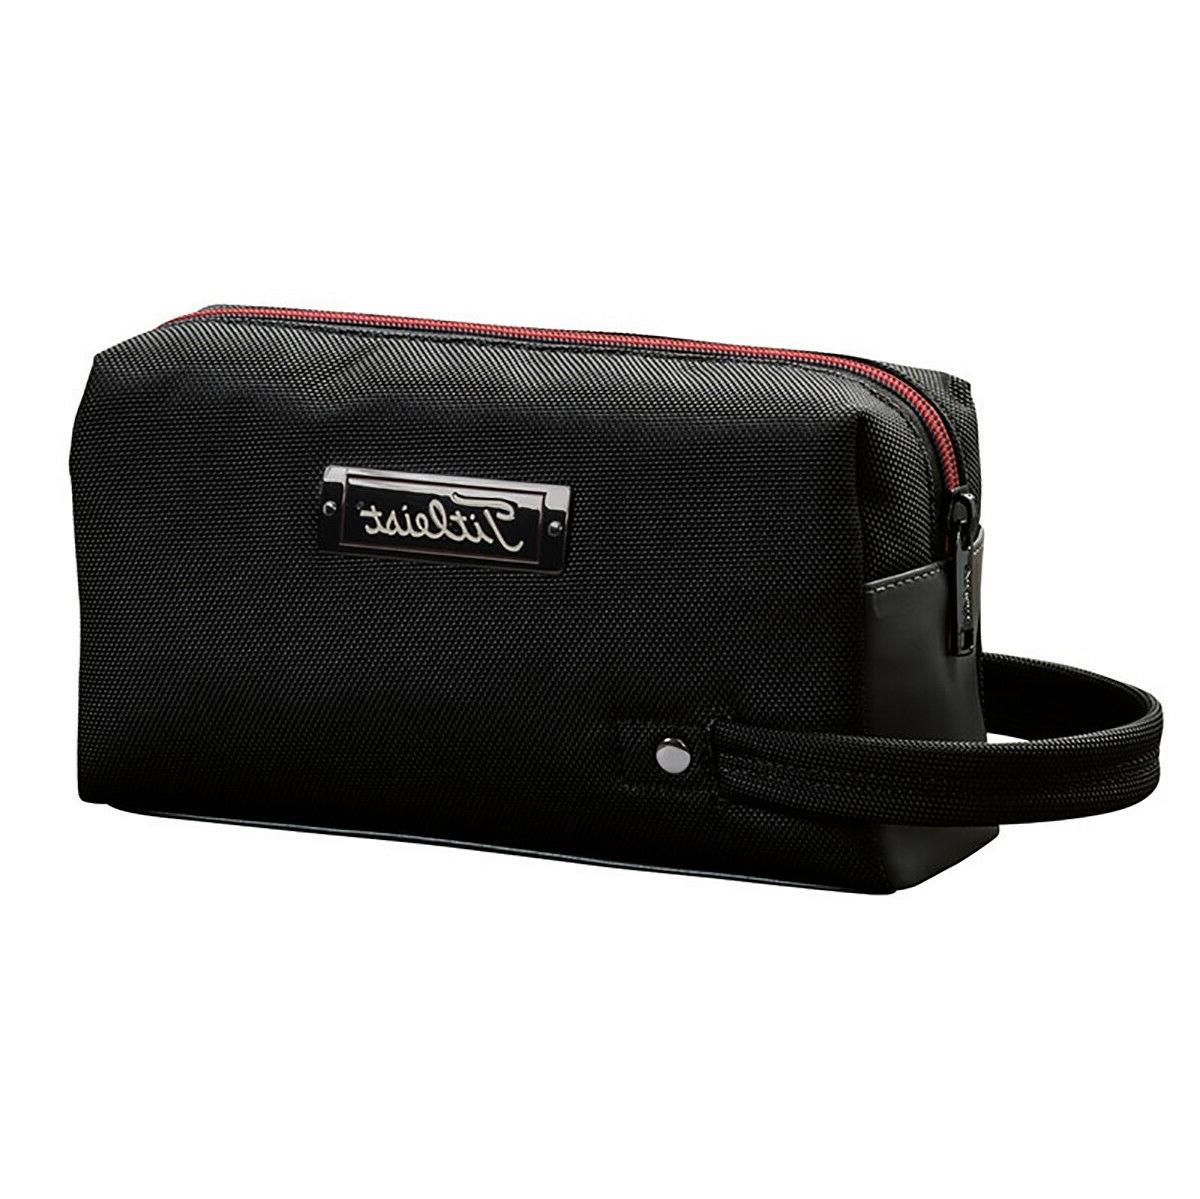 new professional travel gear bag zippered pouch